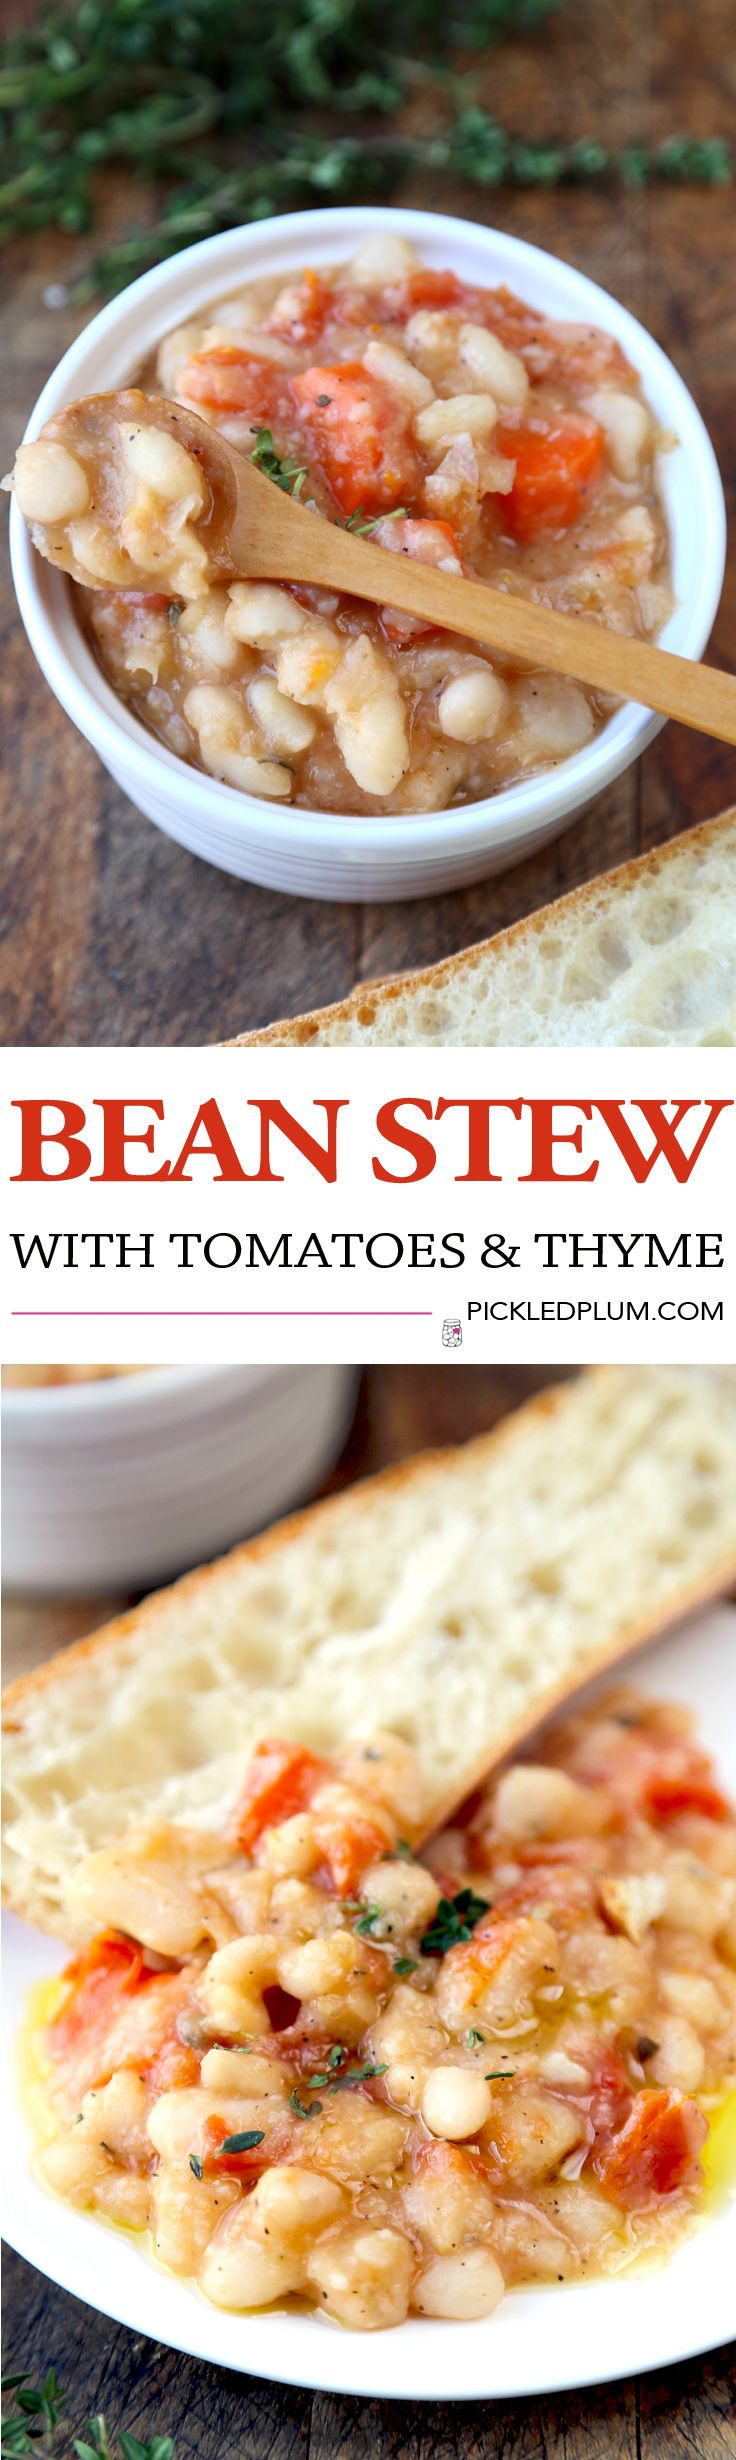 Mediterranean Bean Stew with Tomatoes and Thyme - Gluten-Free and Vegan. Healthy and hearty, this is a delicious and easy recipe! http://www.pickledplum.com/bean-stew-healthy-recipe/